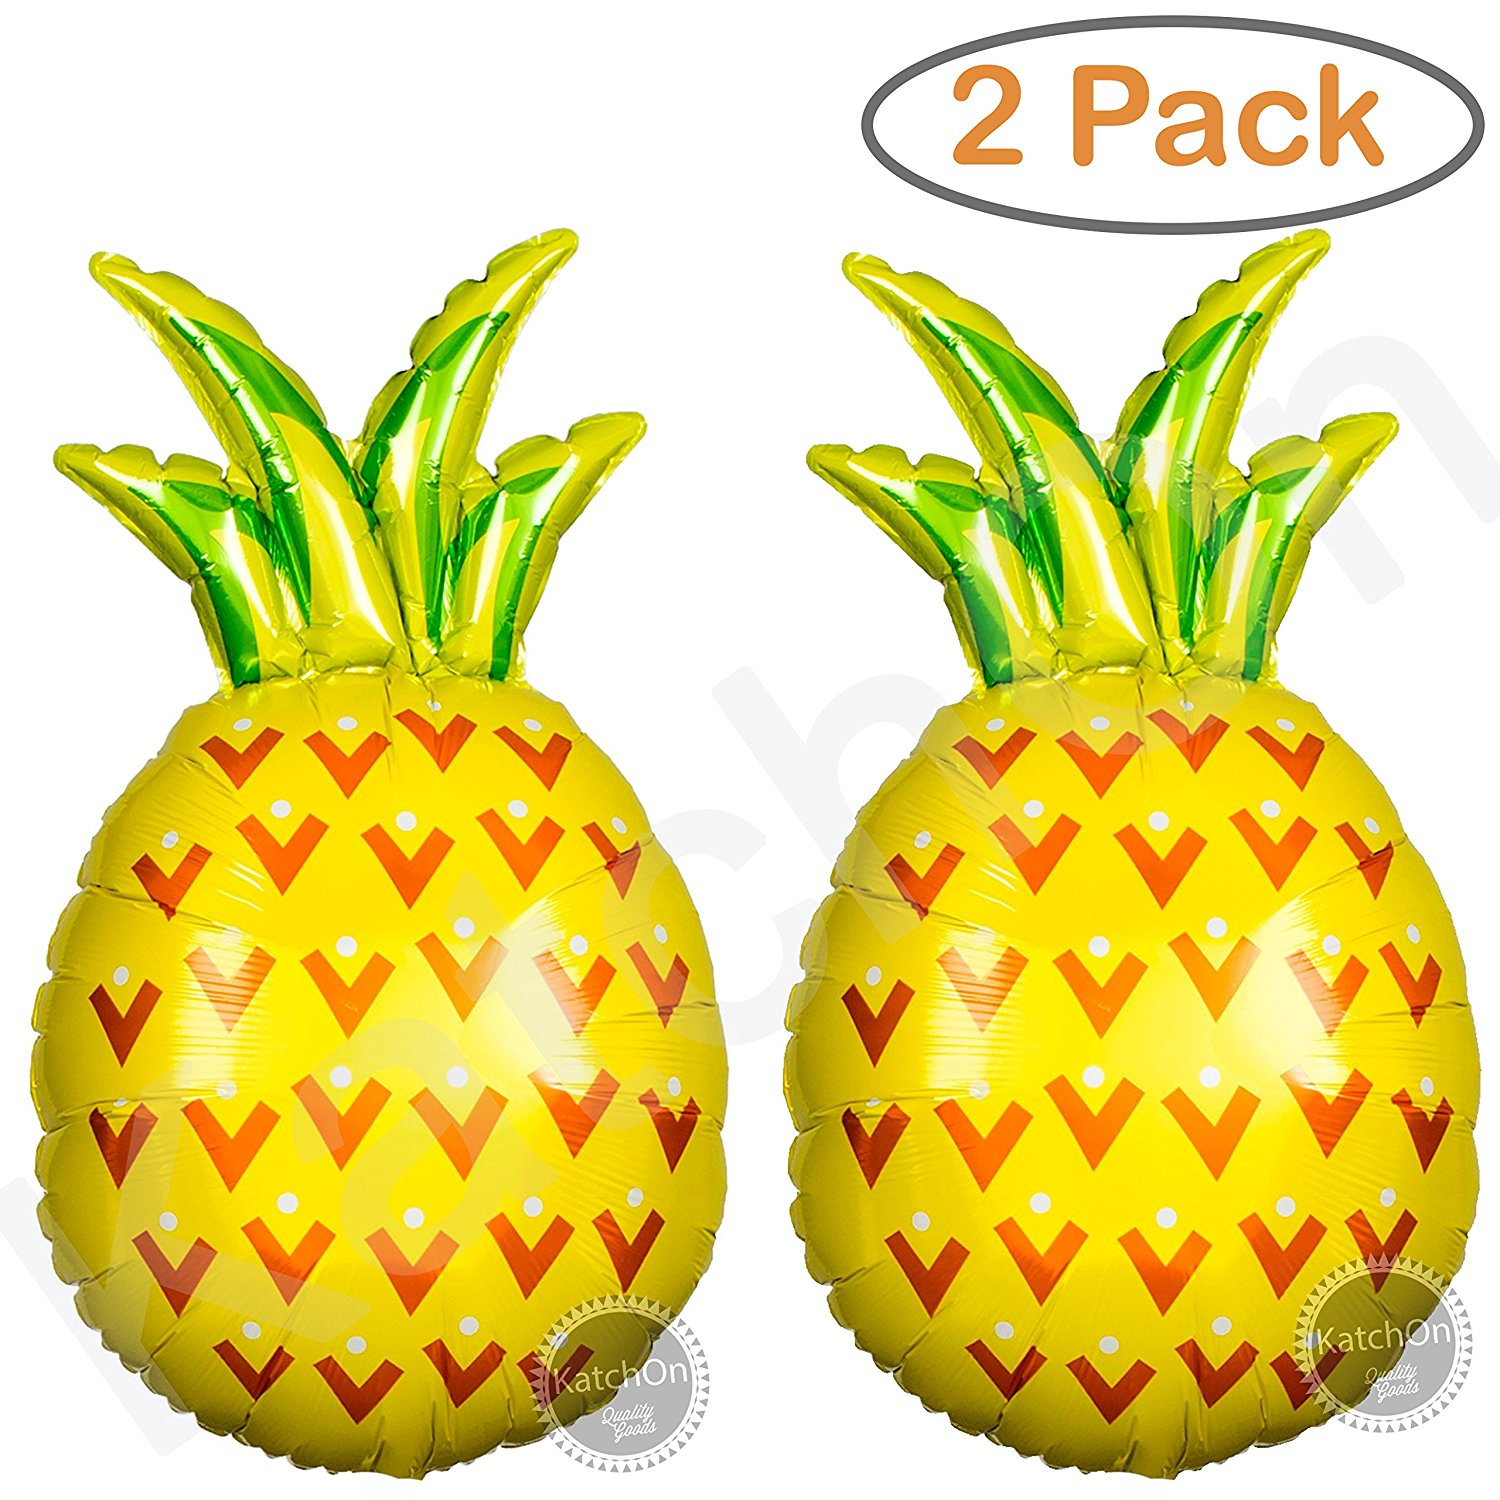 Giant Pineapple Helium Balloons Decorations - 2ct. Pineapple Decor for Pineapple Party Decorations   Luau Balloons   Pineapple Balloon Party Supplies   Fruit Balloons   Helium Supported 32 Inch